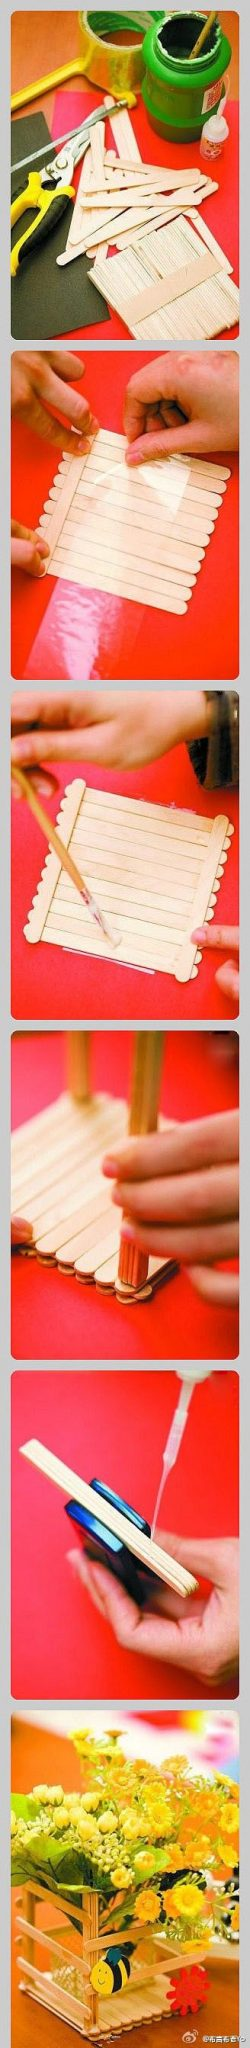 Easy craft ideas for kids 05